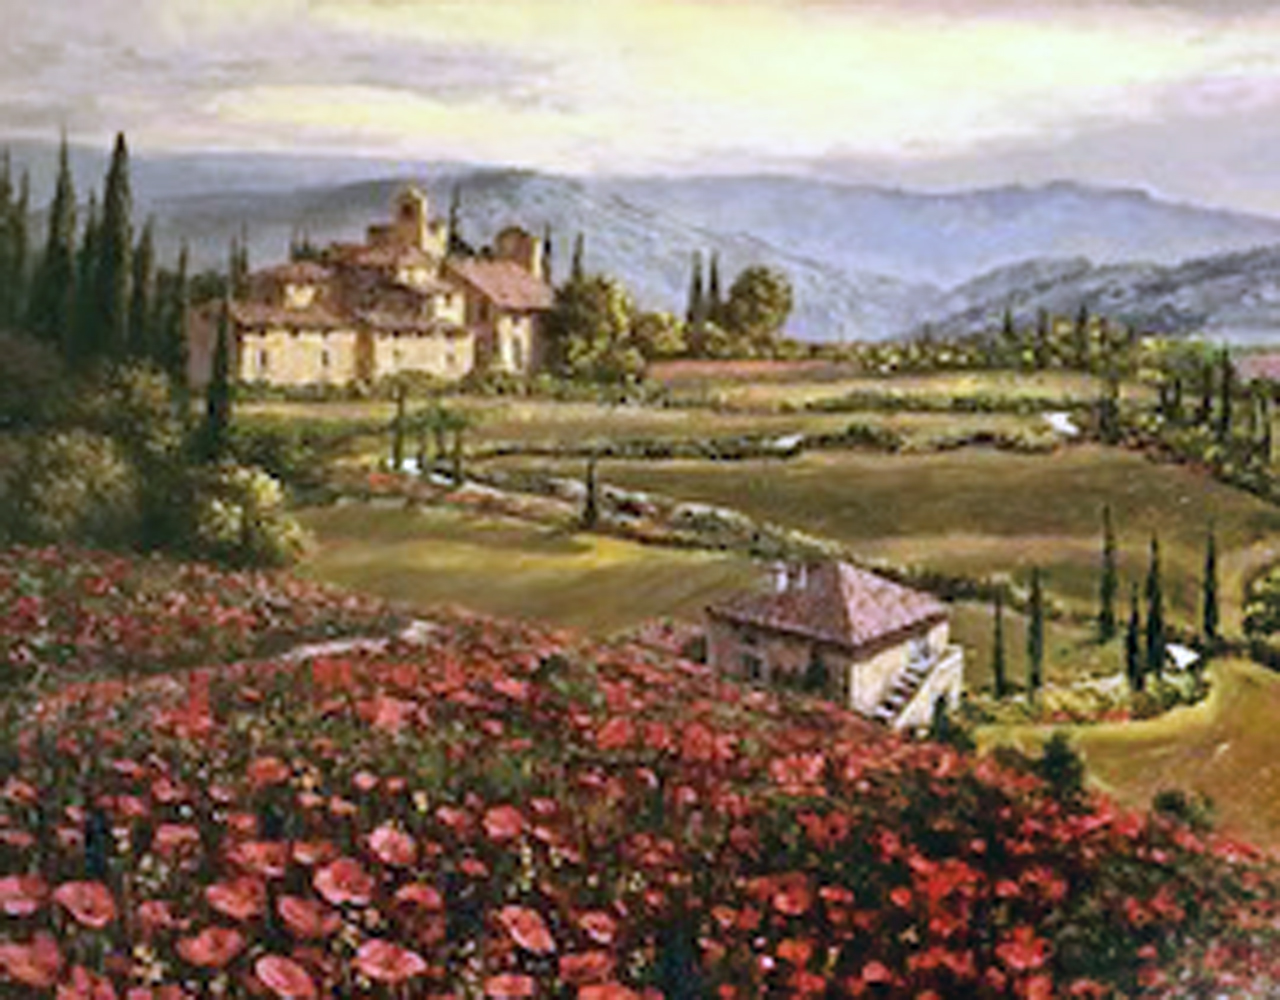 Tuscany Suite Sunflowers, And Poppies in Tuscany, Suite of 2 Embellished by Sam Park